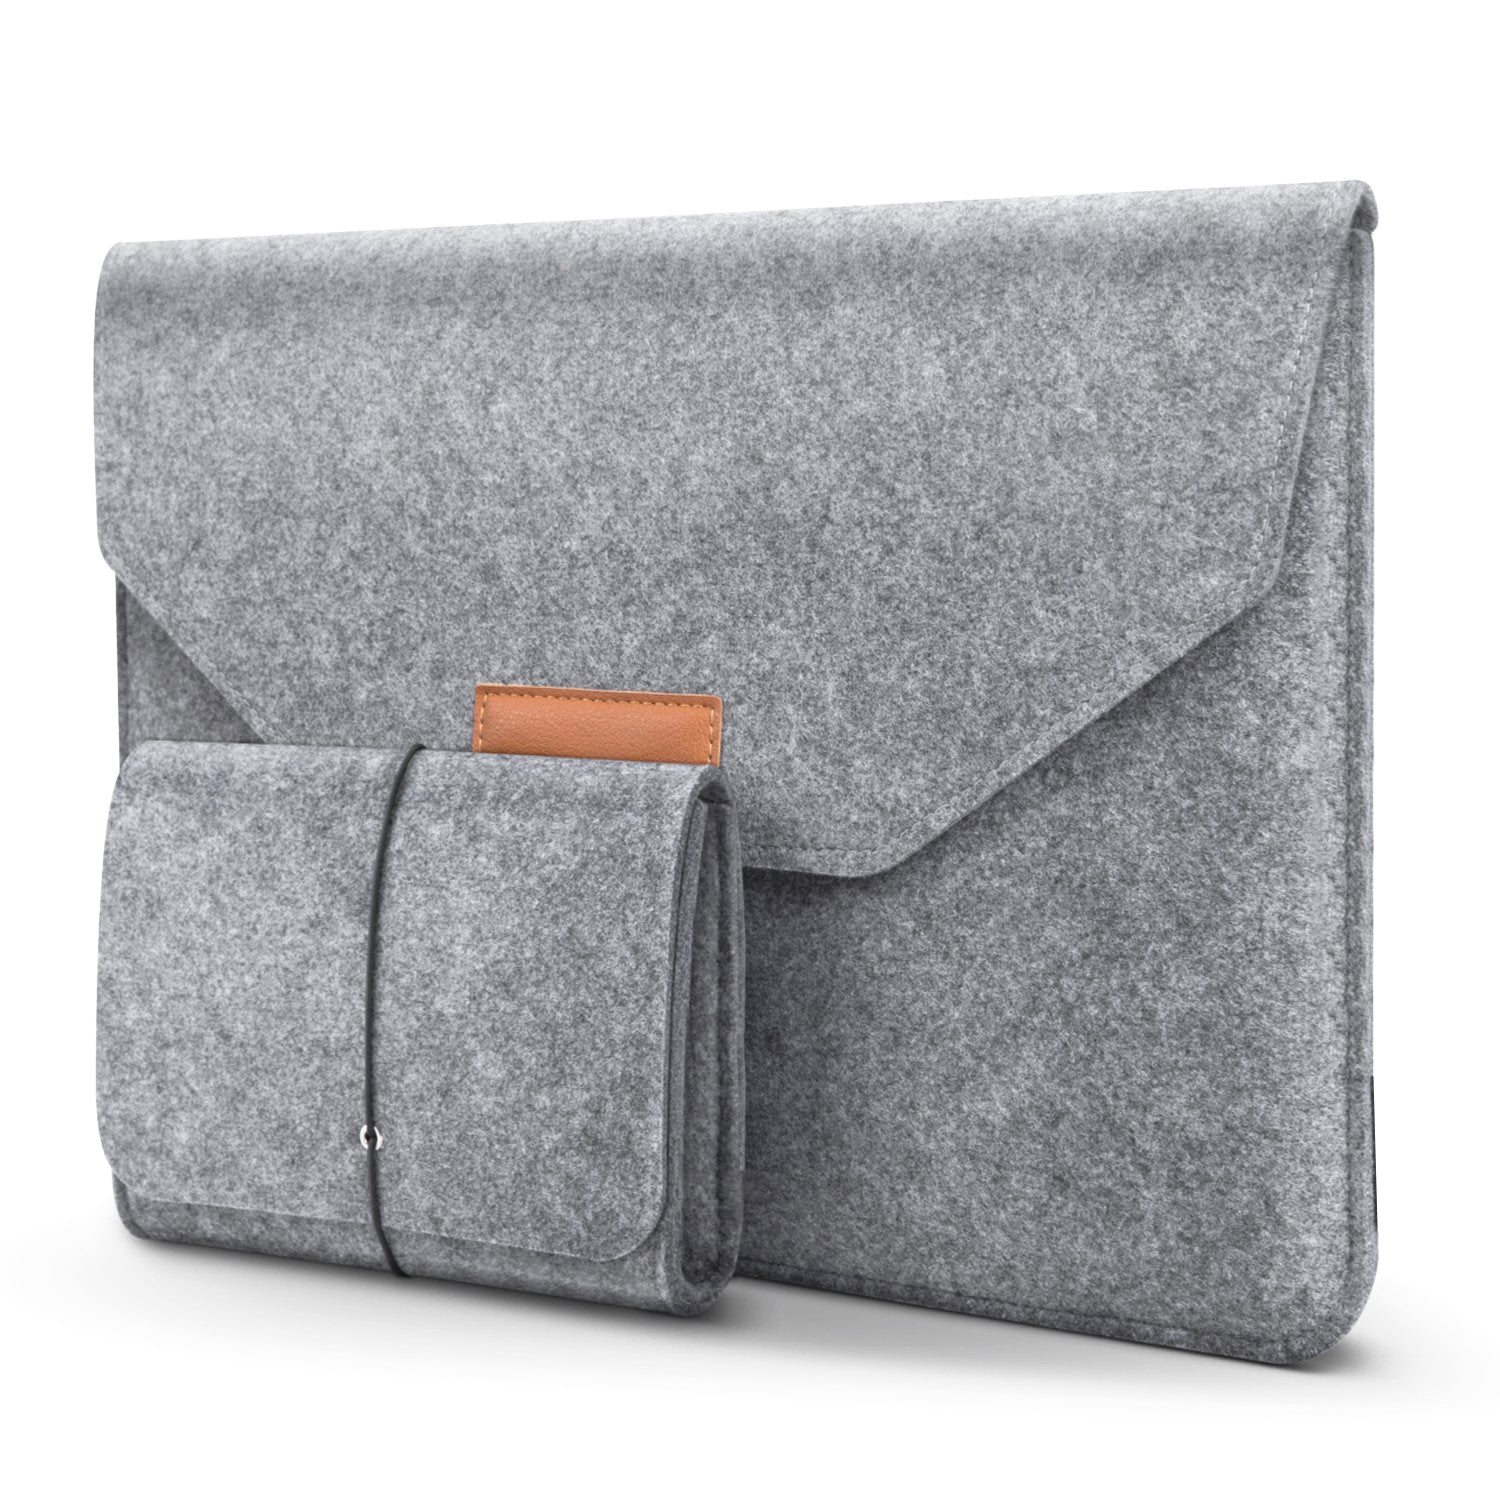 Basics Felt 13.3-Inch Sleeve Case Protective Bag with Mouse Pouch for MacBook Pro/Air/Retina 13/iPad Pro/HP/Lenovo/Acer/Dell/Asus/Samsung Chromebook and More 13-13.3 Inch Laptops - Mobizang